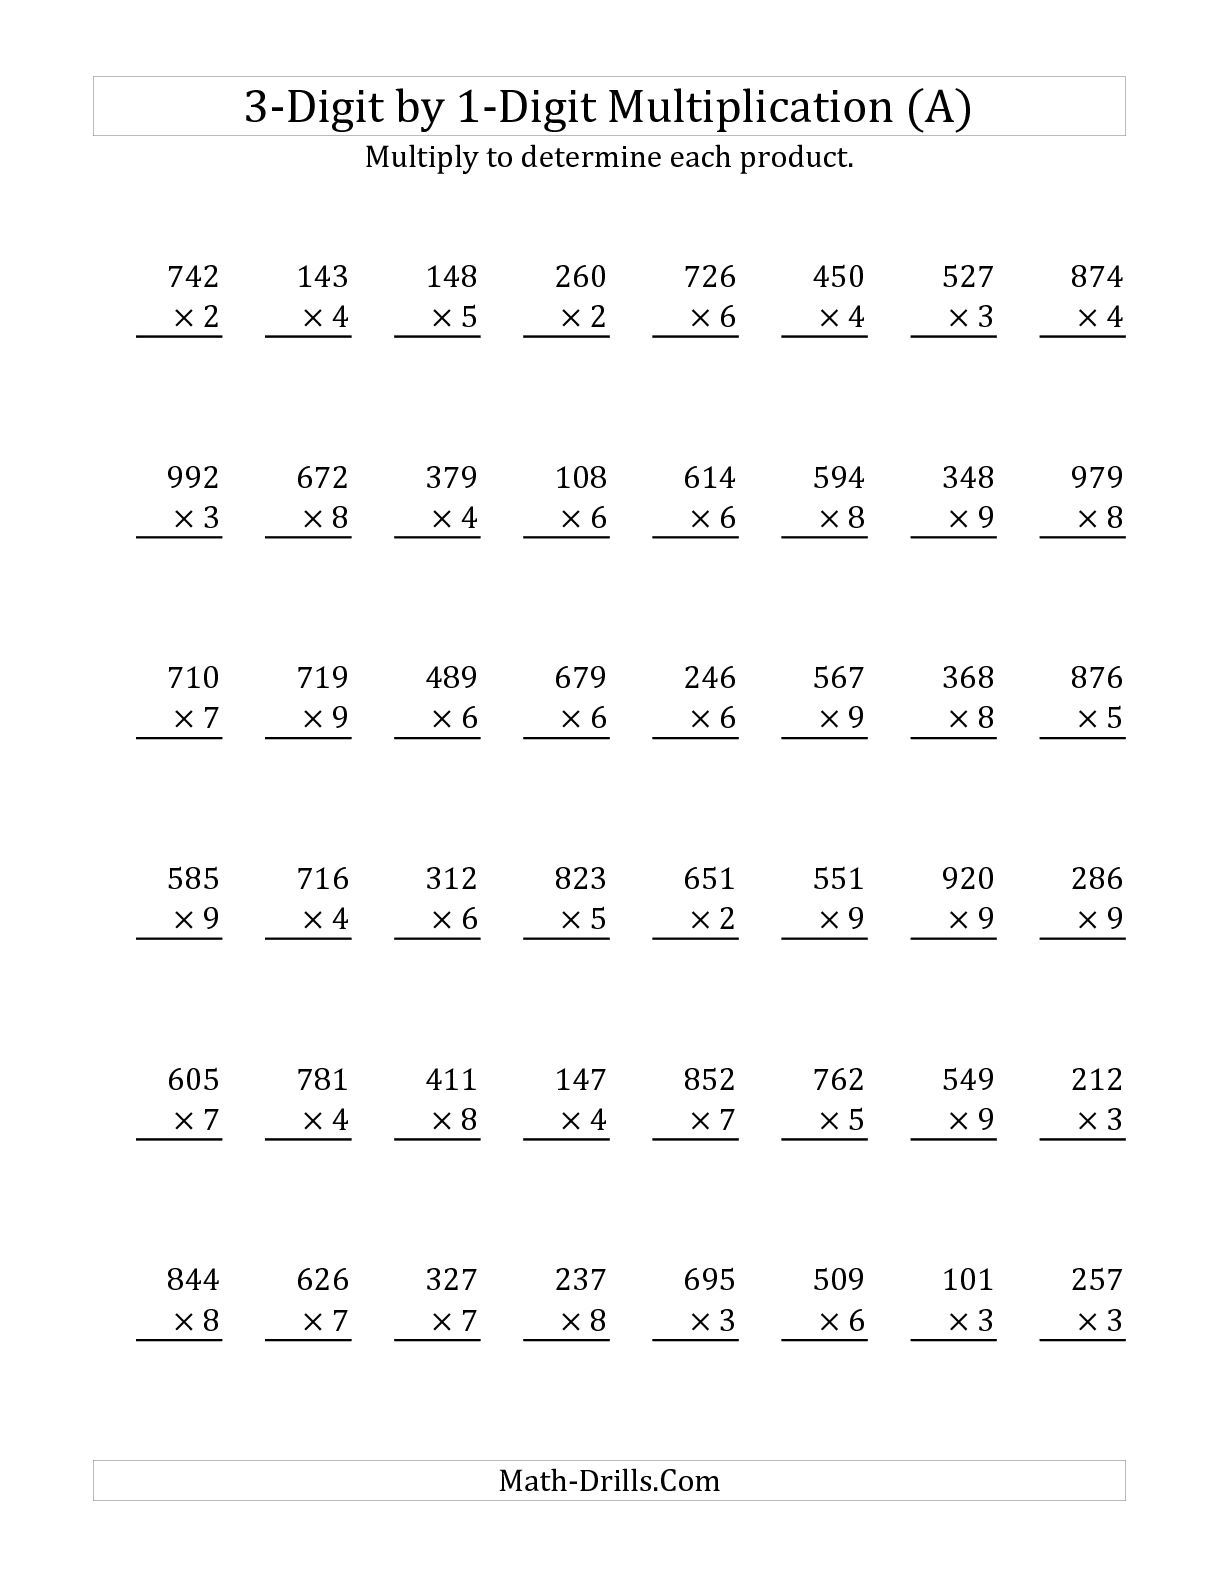 worksheet 3 Digit By 1 Digit Multiplication Worksheets 3 digit by 1 multiplication a math worksheet freemath freemath